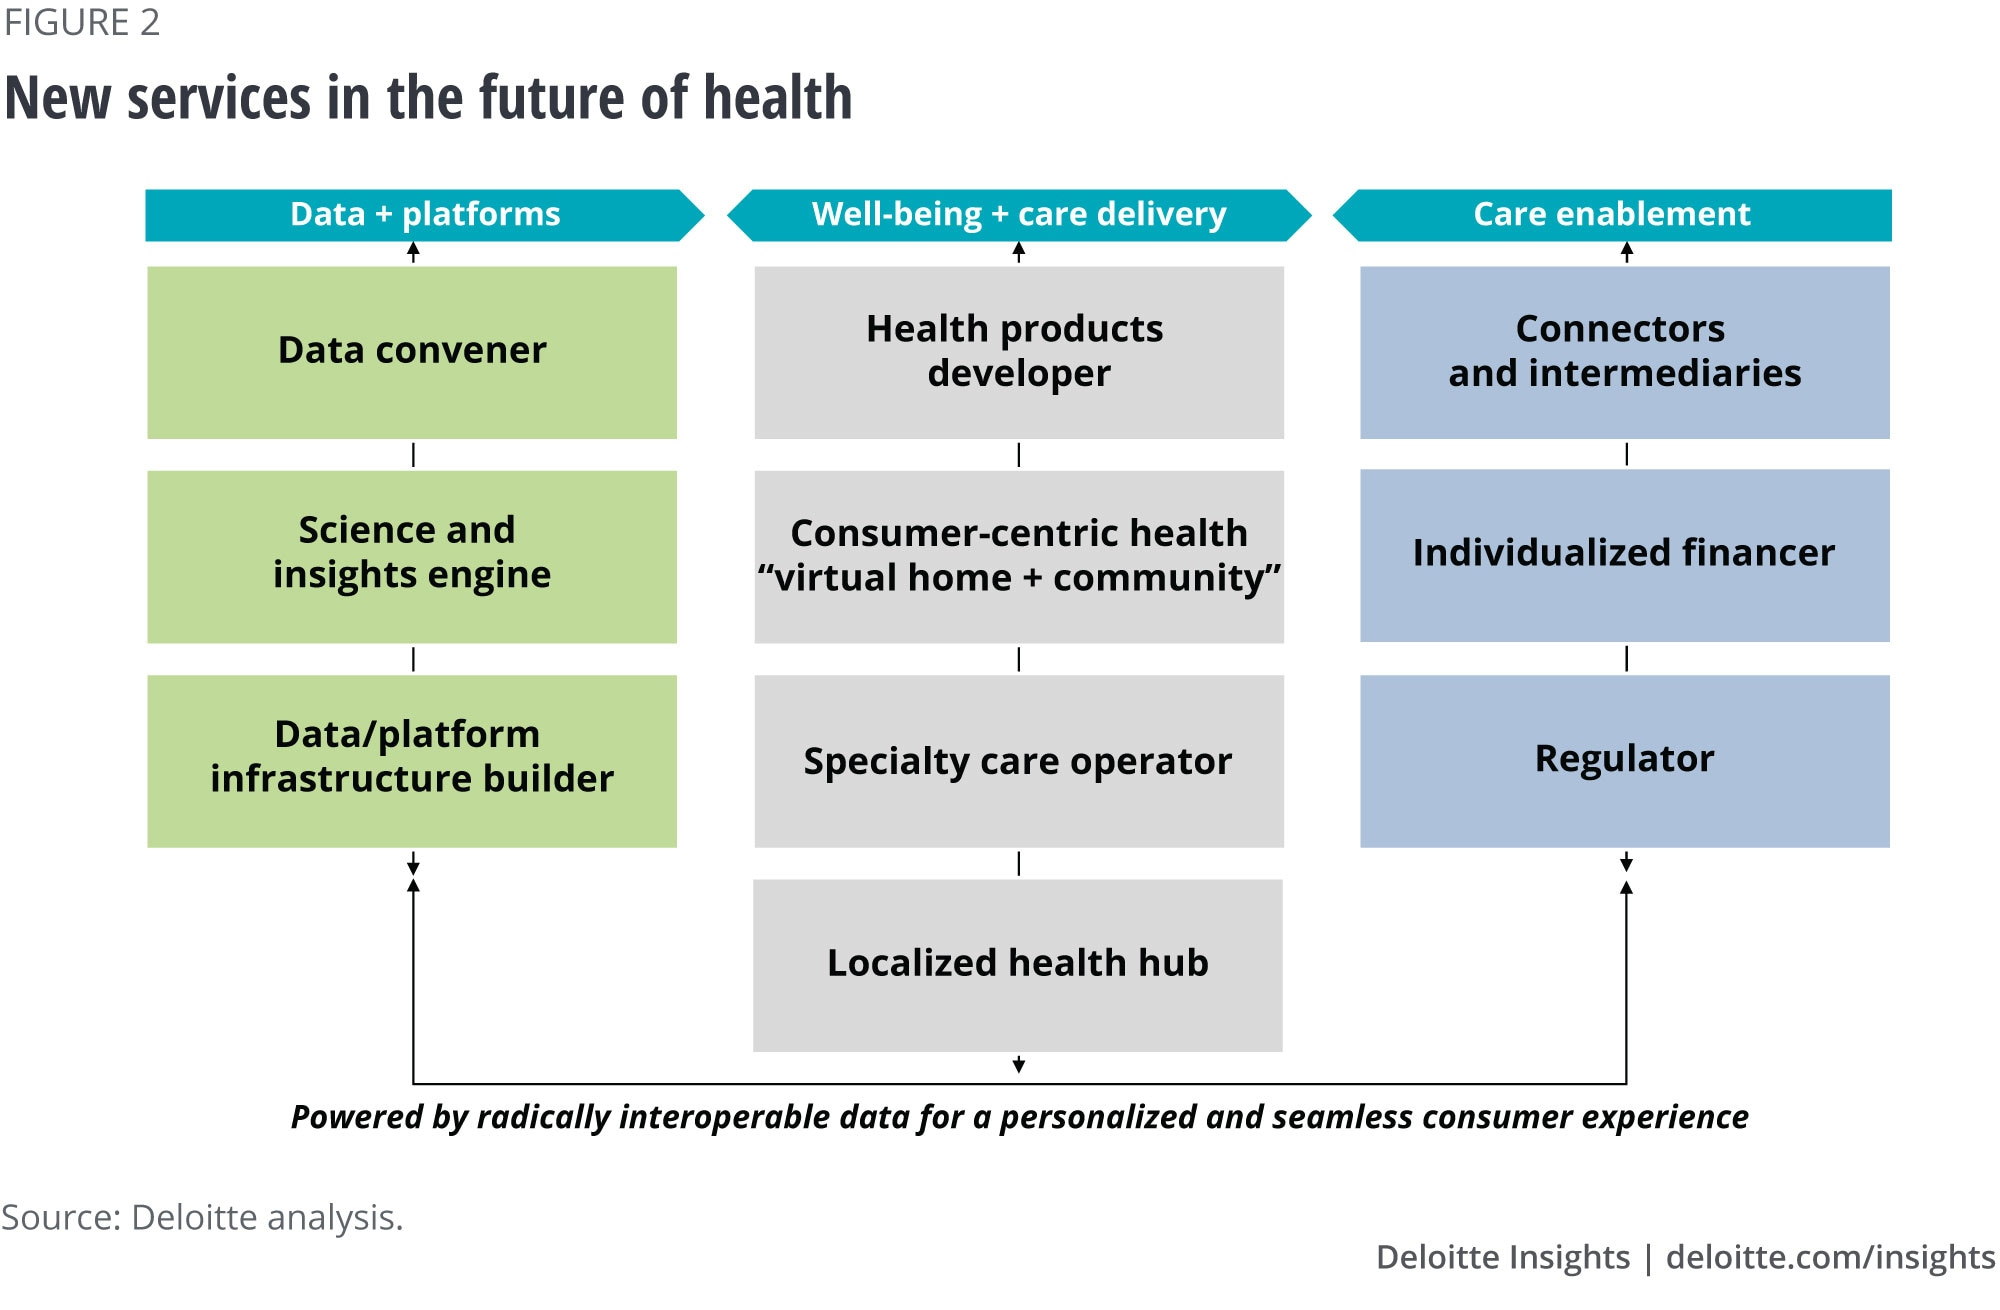 New services in the future of health